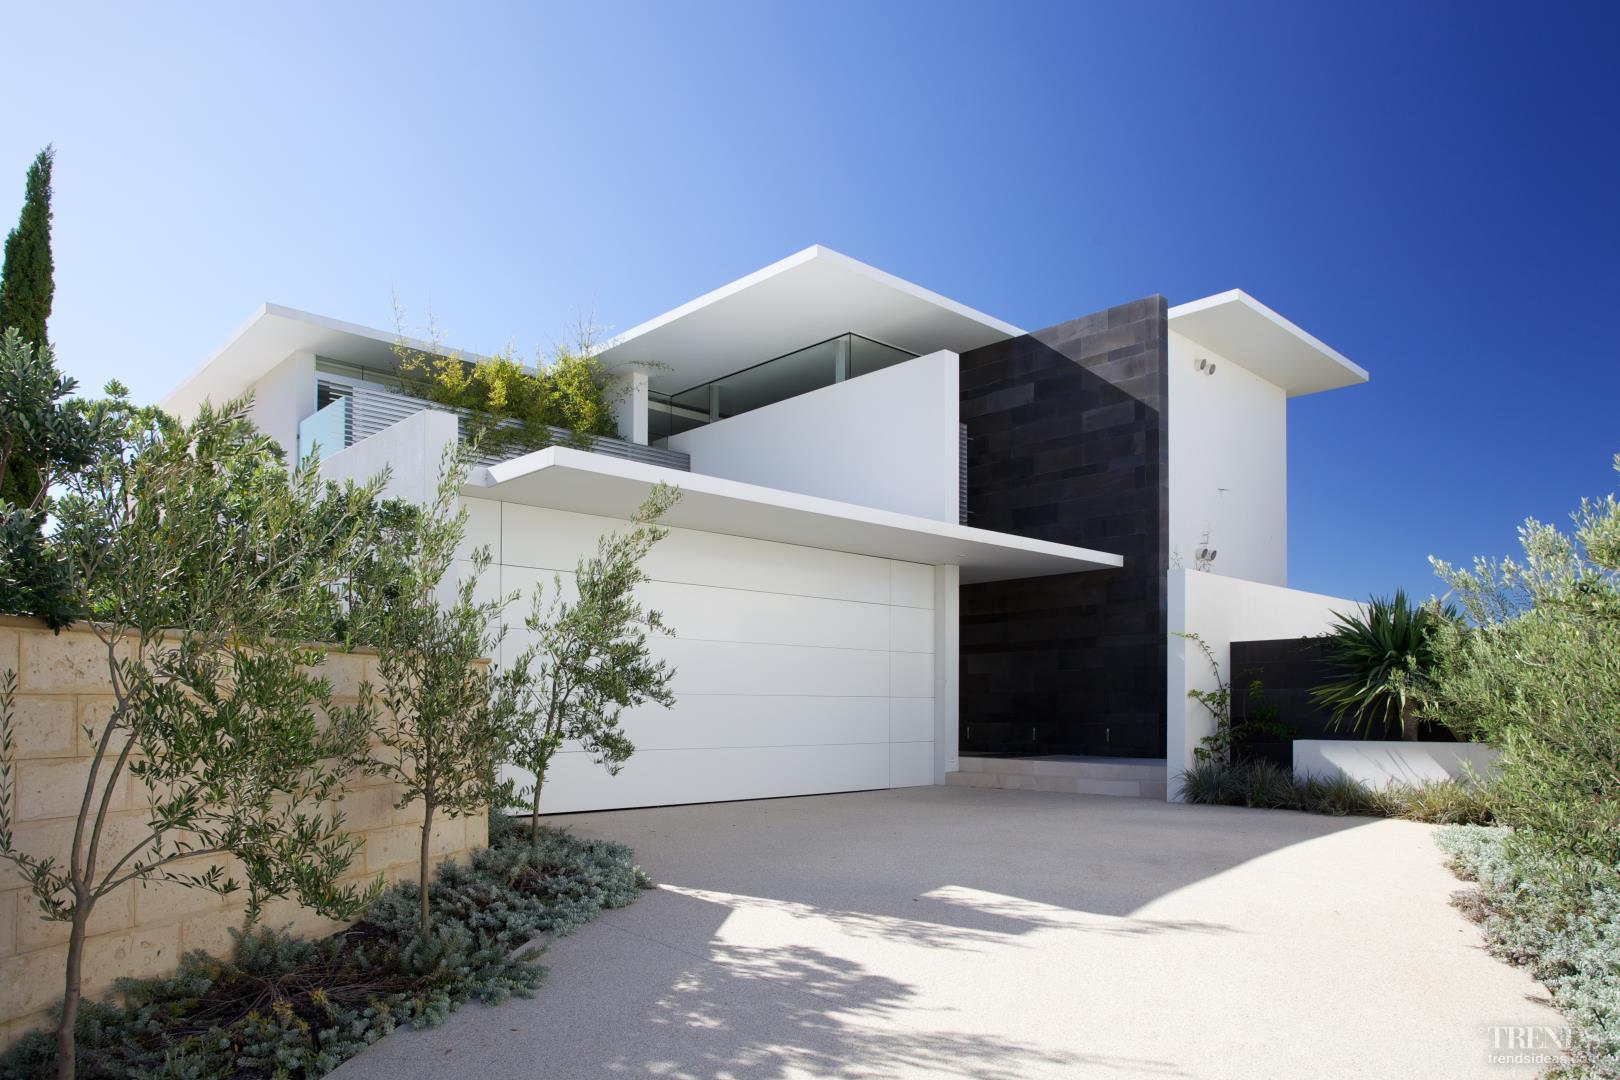 Coastal Home With Large Roof Overhangs And Protected